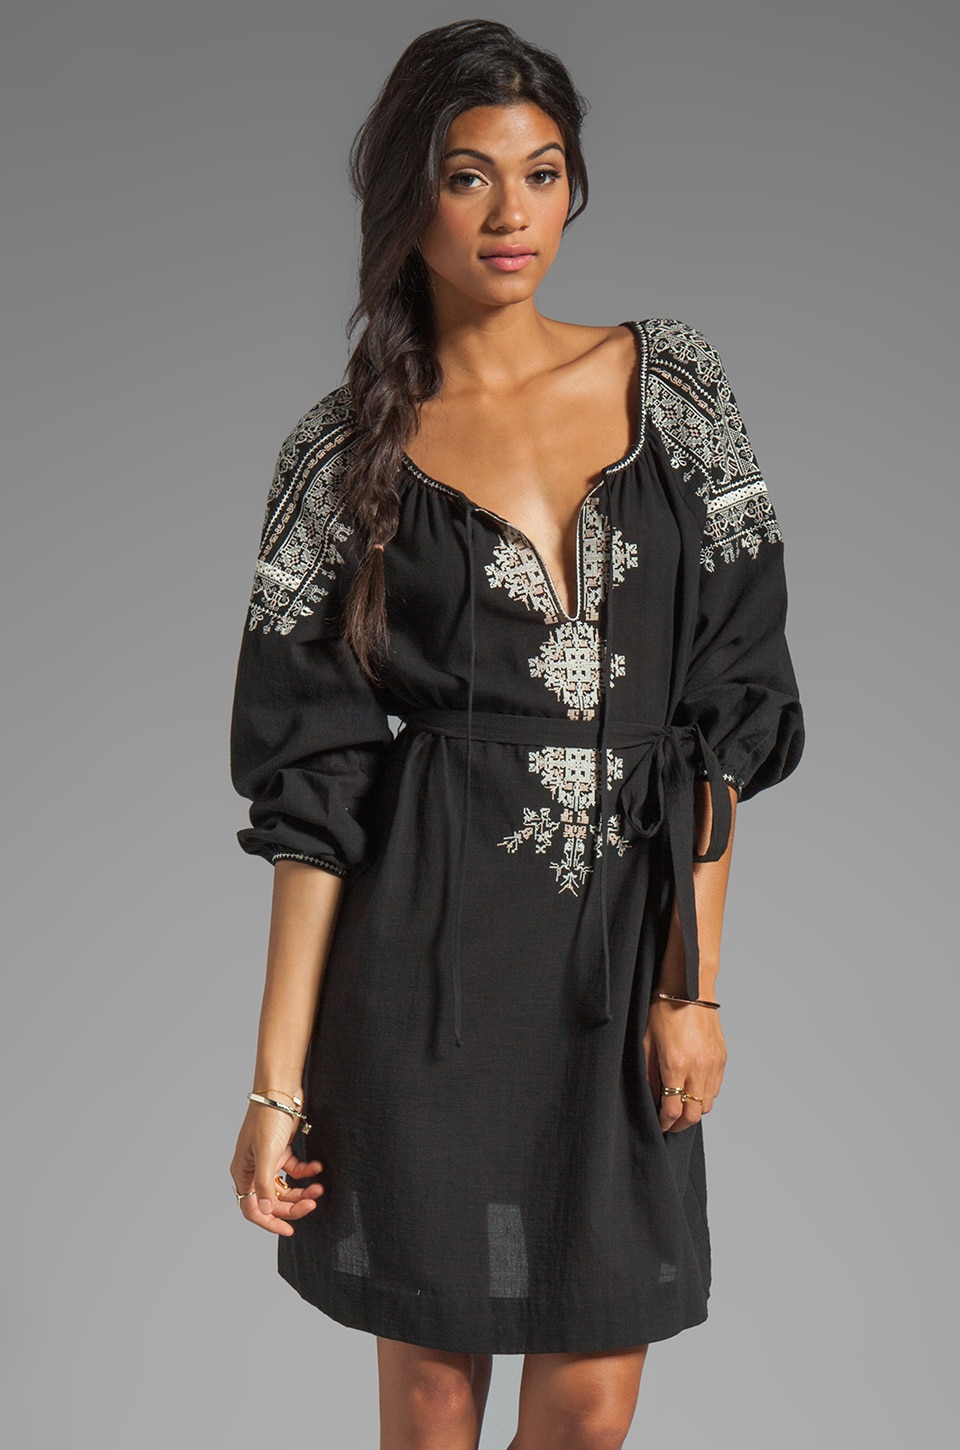 BCBGMAXAZRIA Long Sleeve Combo Dress in Black Combo